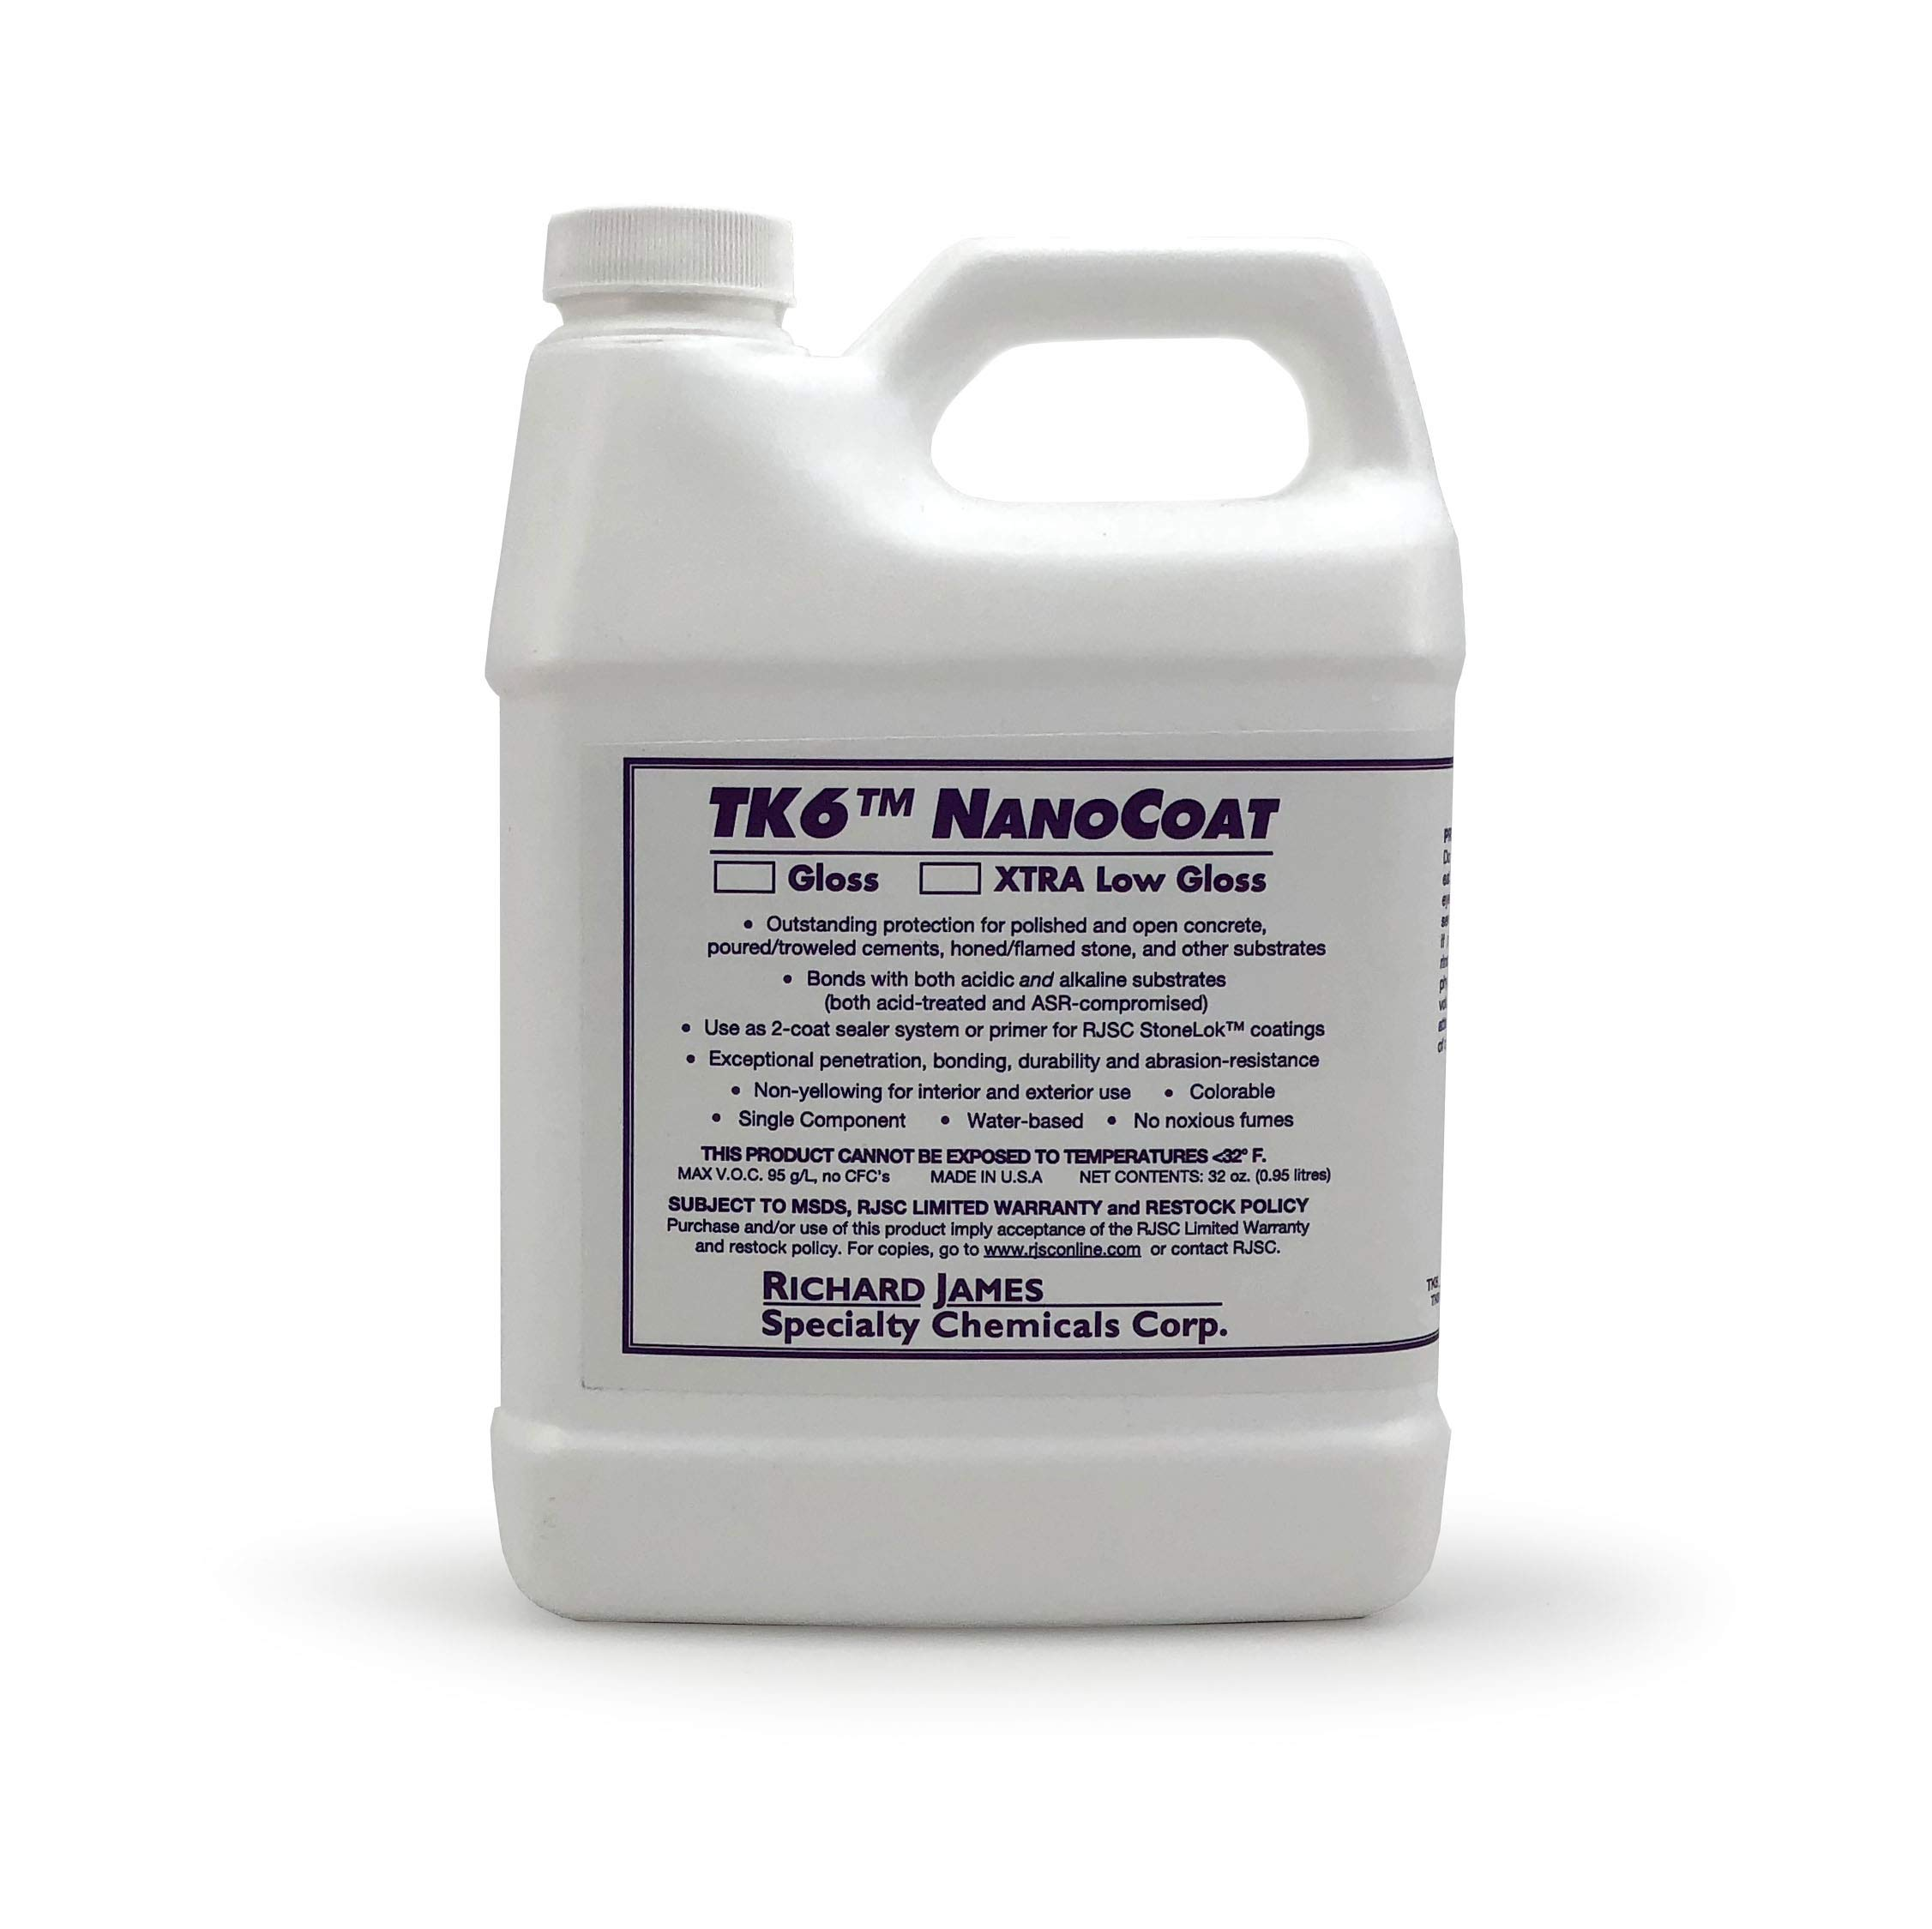 TK6 Nanocoat Concrete Countertop Sealer, 32 oz Quart, Extra Low Gloss (1)